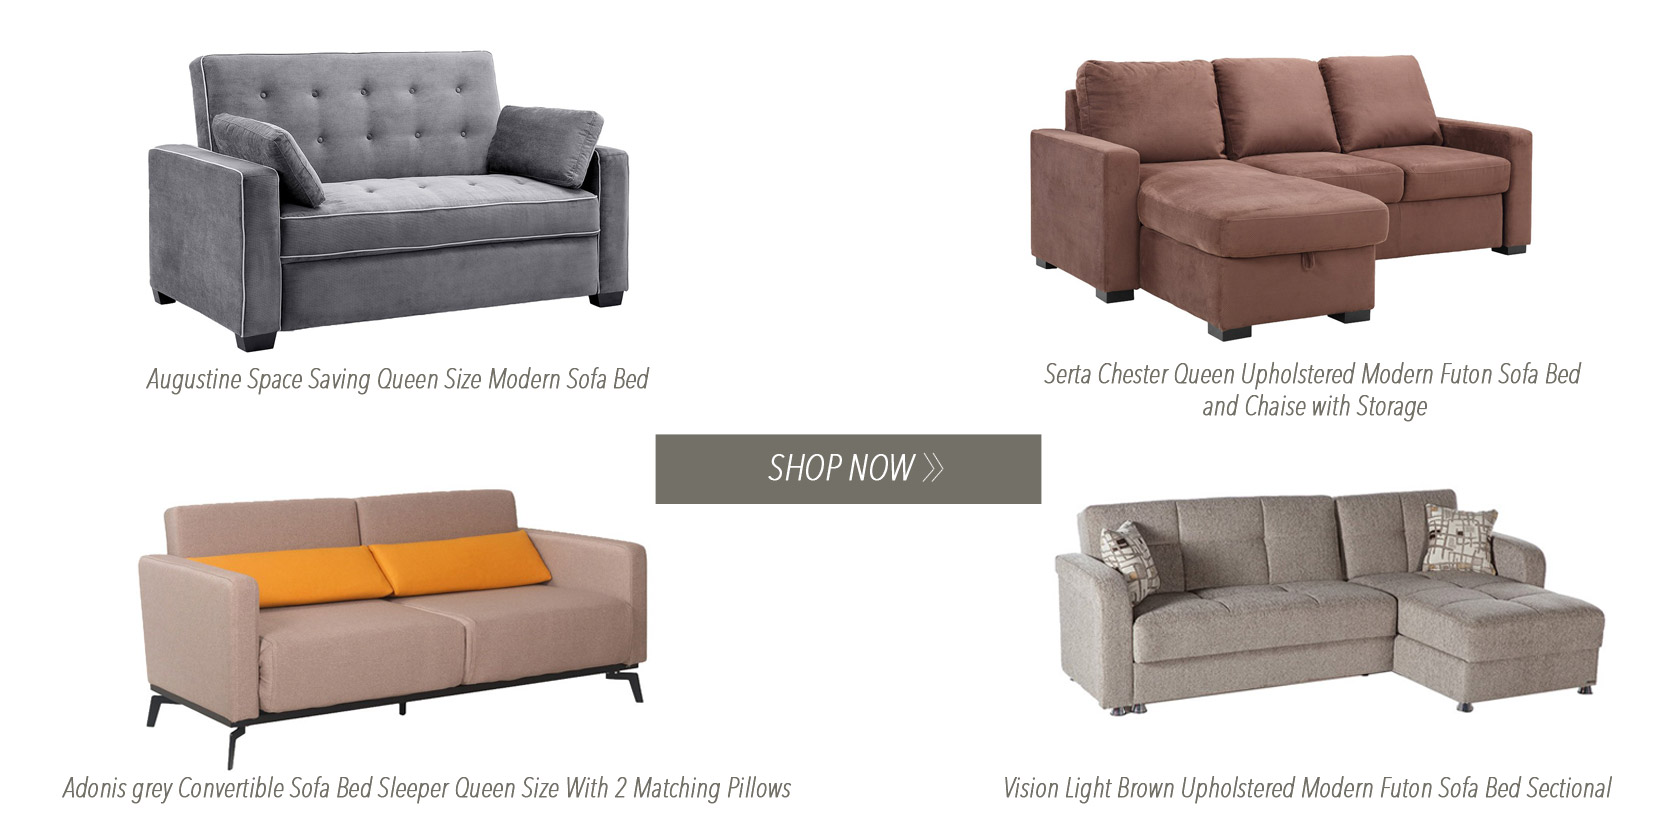 Modern Sofabed Sleepers Queen size